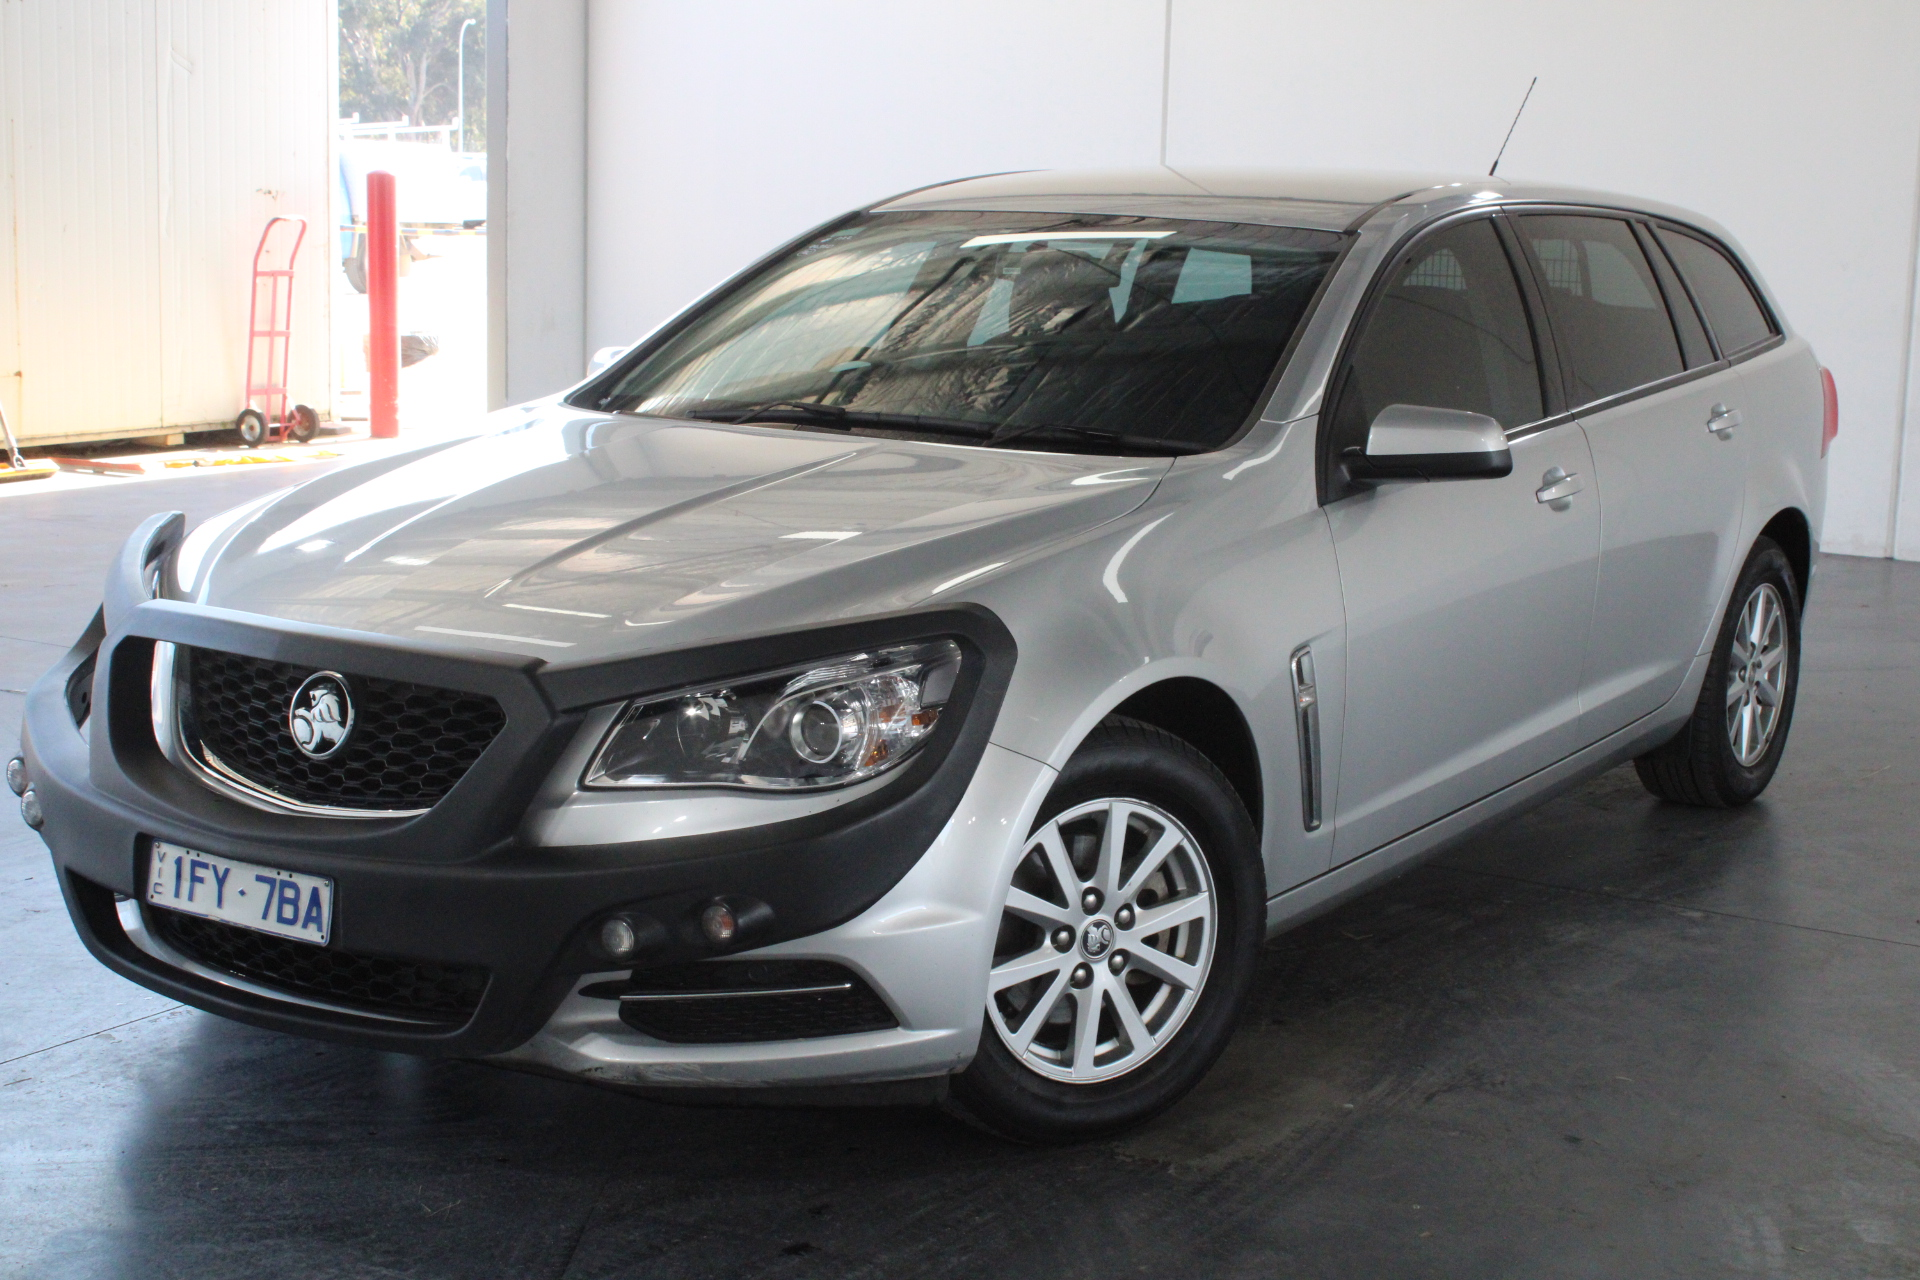 2016 Holden Sportwagon Evoke VF Automatic Wagon